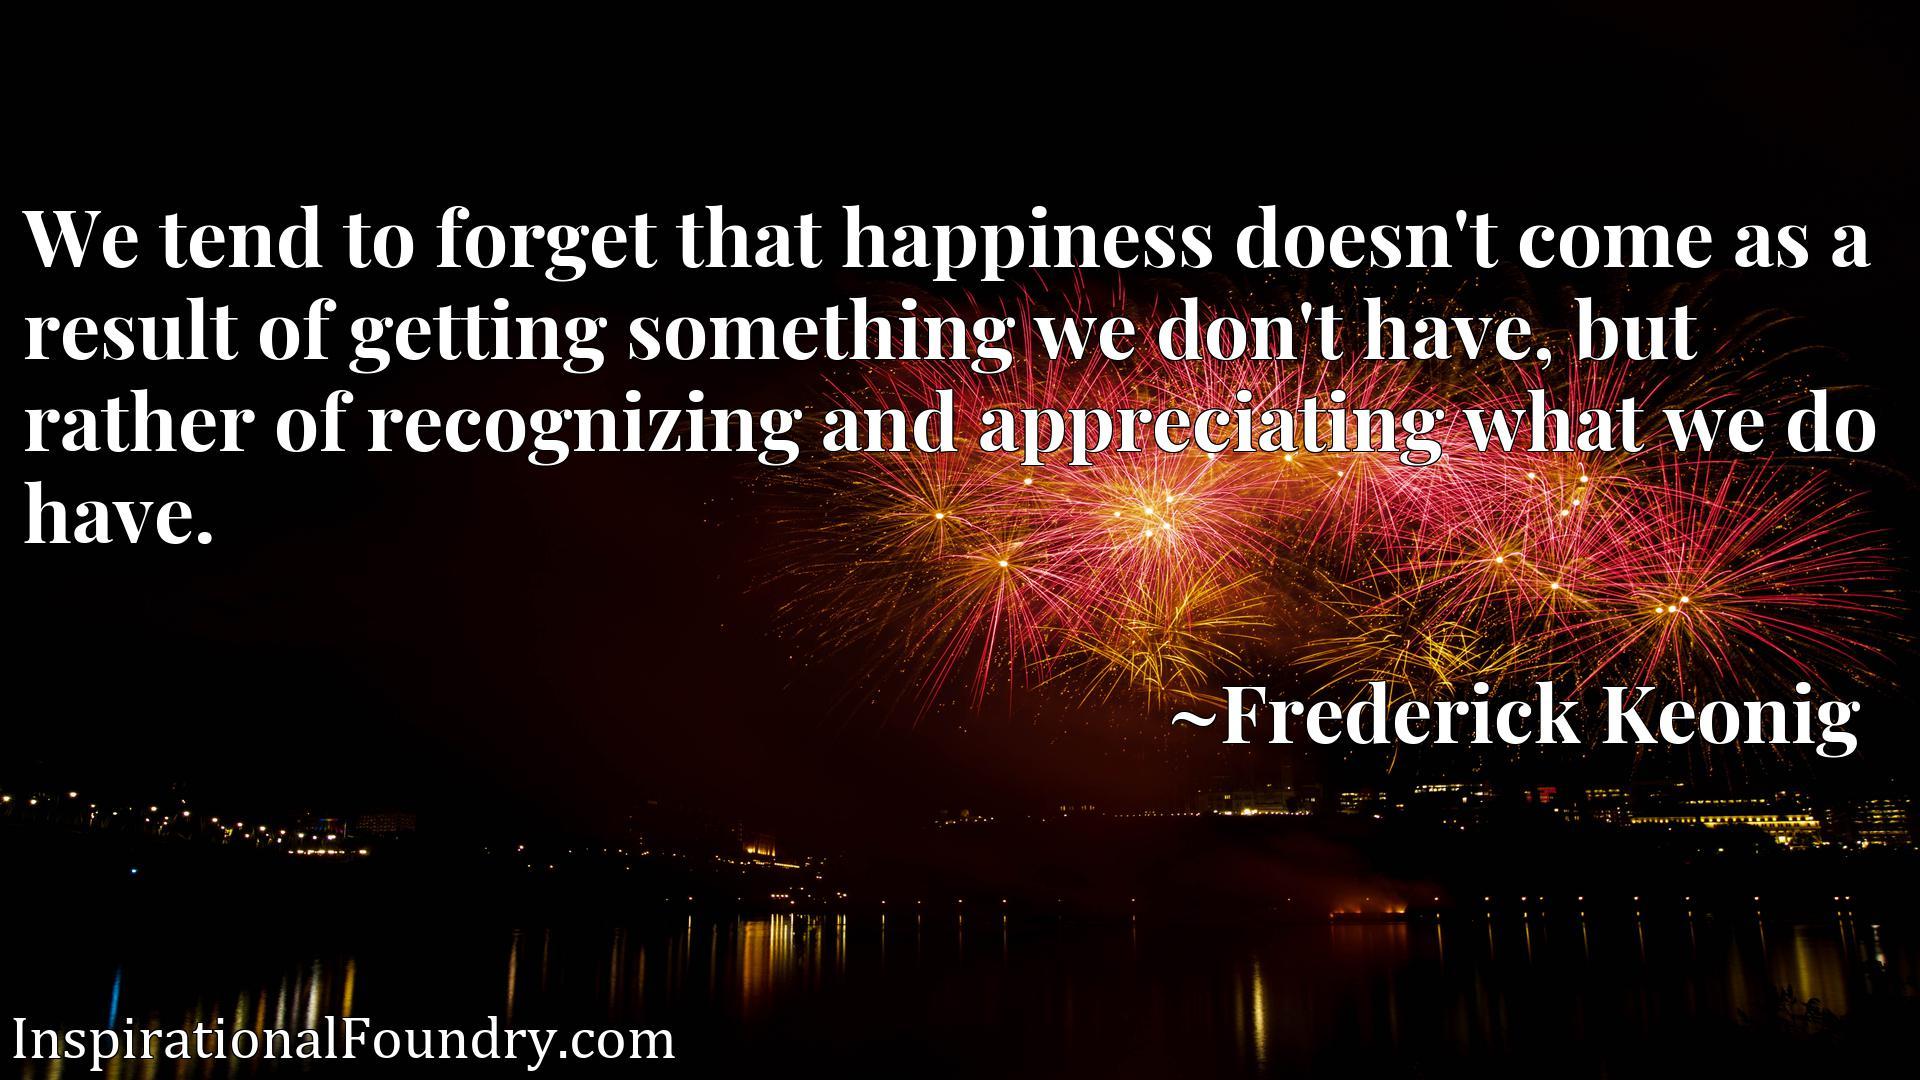 Quote Picture :We tend to forget that happiness doesn't come as a result of getting something we don't have, but rather of recognizing and appreciating what we do have.